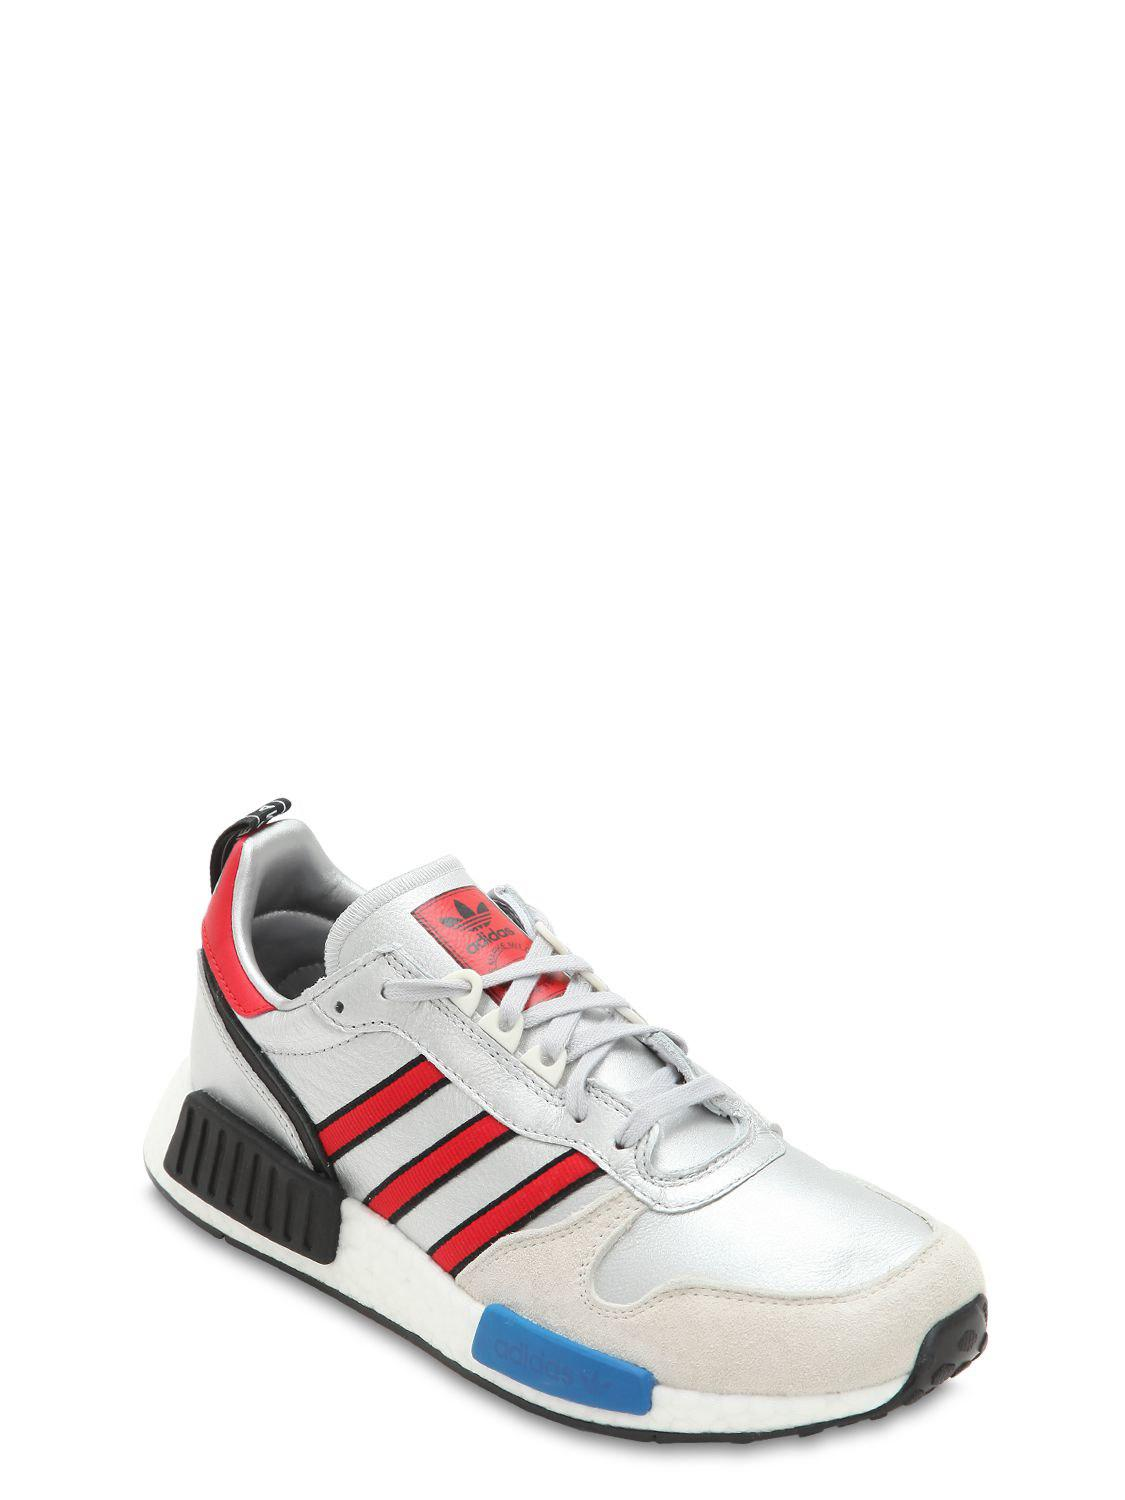 4f24450fecb79 Lyst - adidas Originals Rising Star X R1 Metallic Sneakers in Metallic for  Men